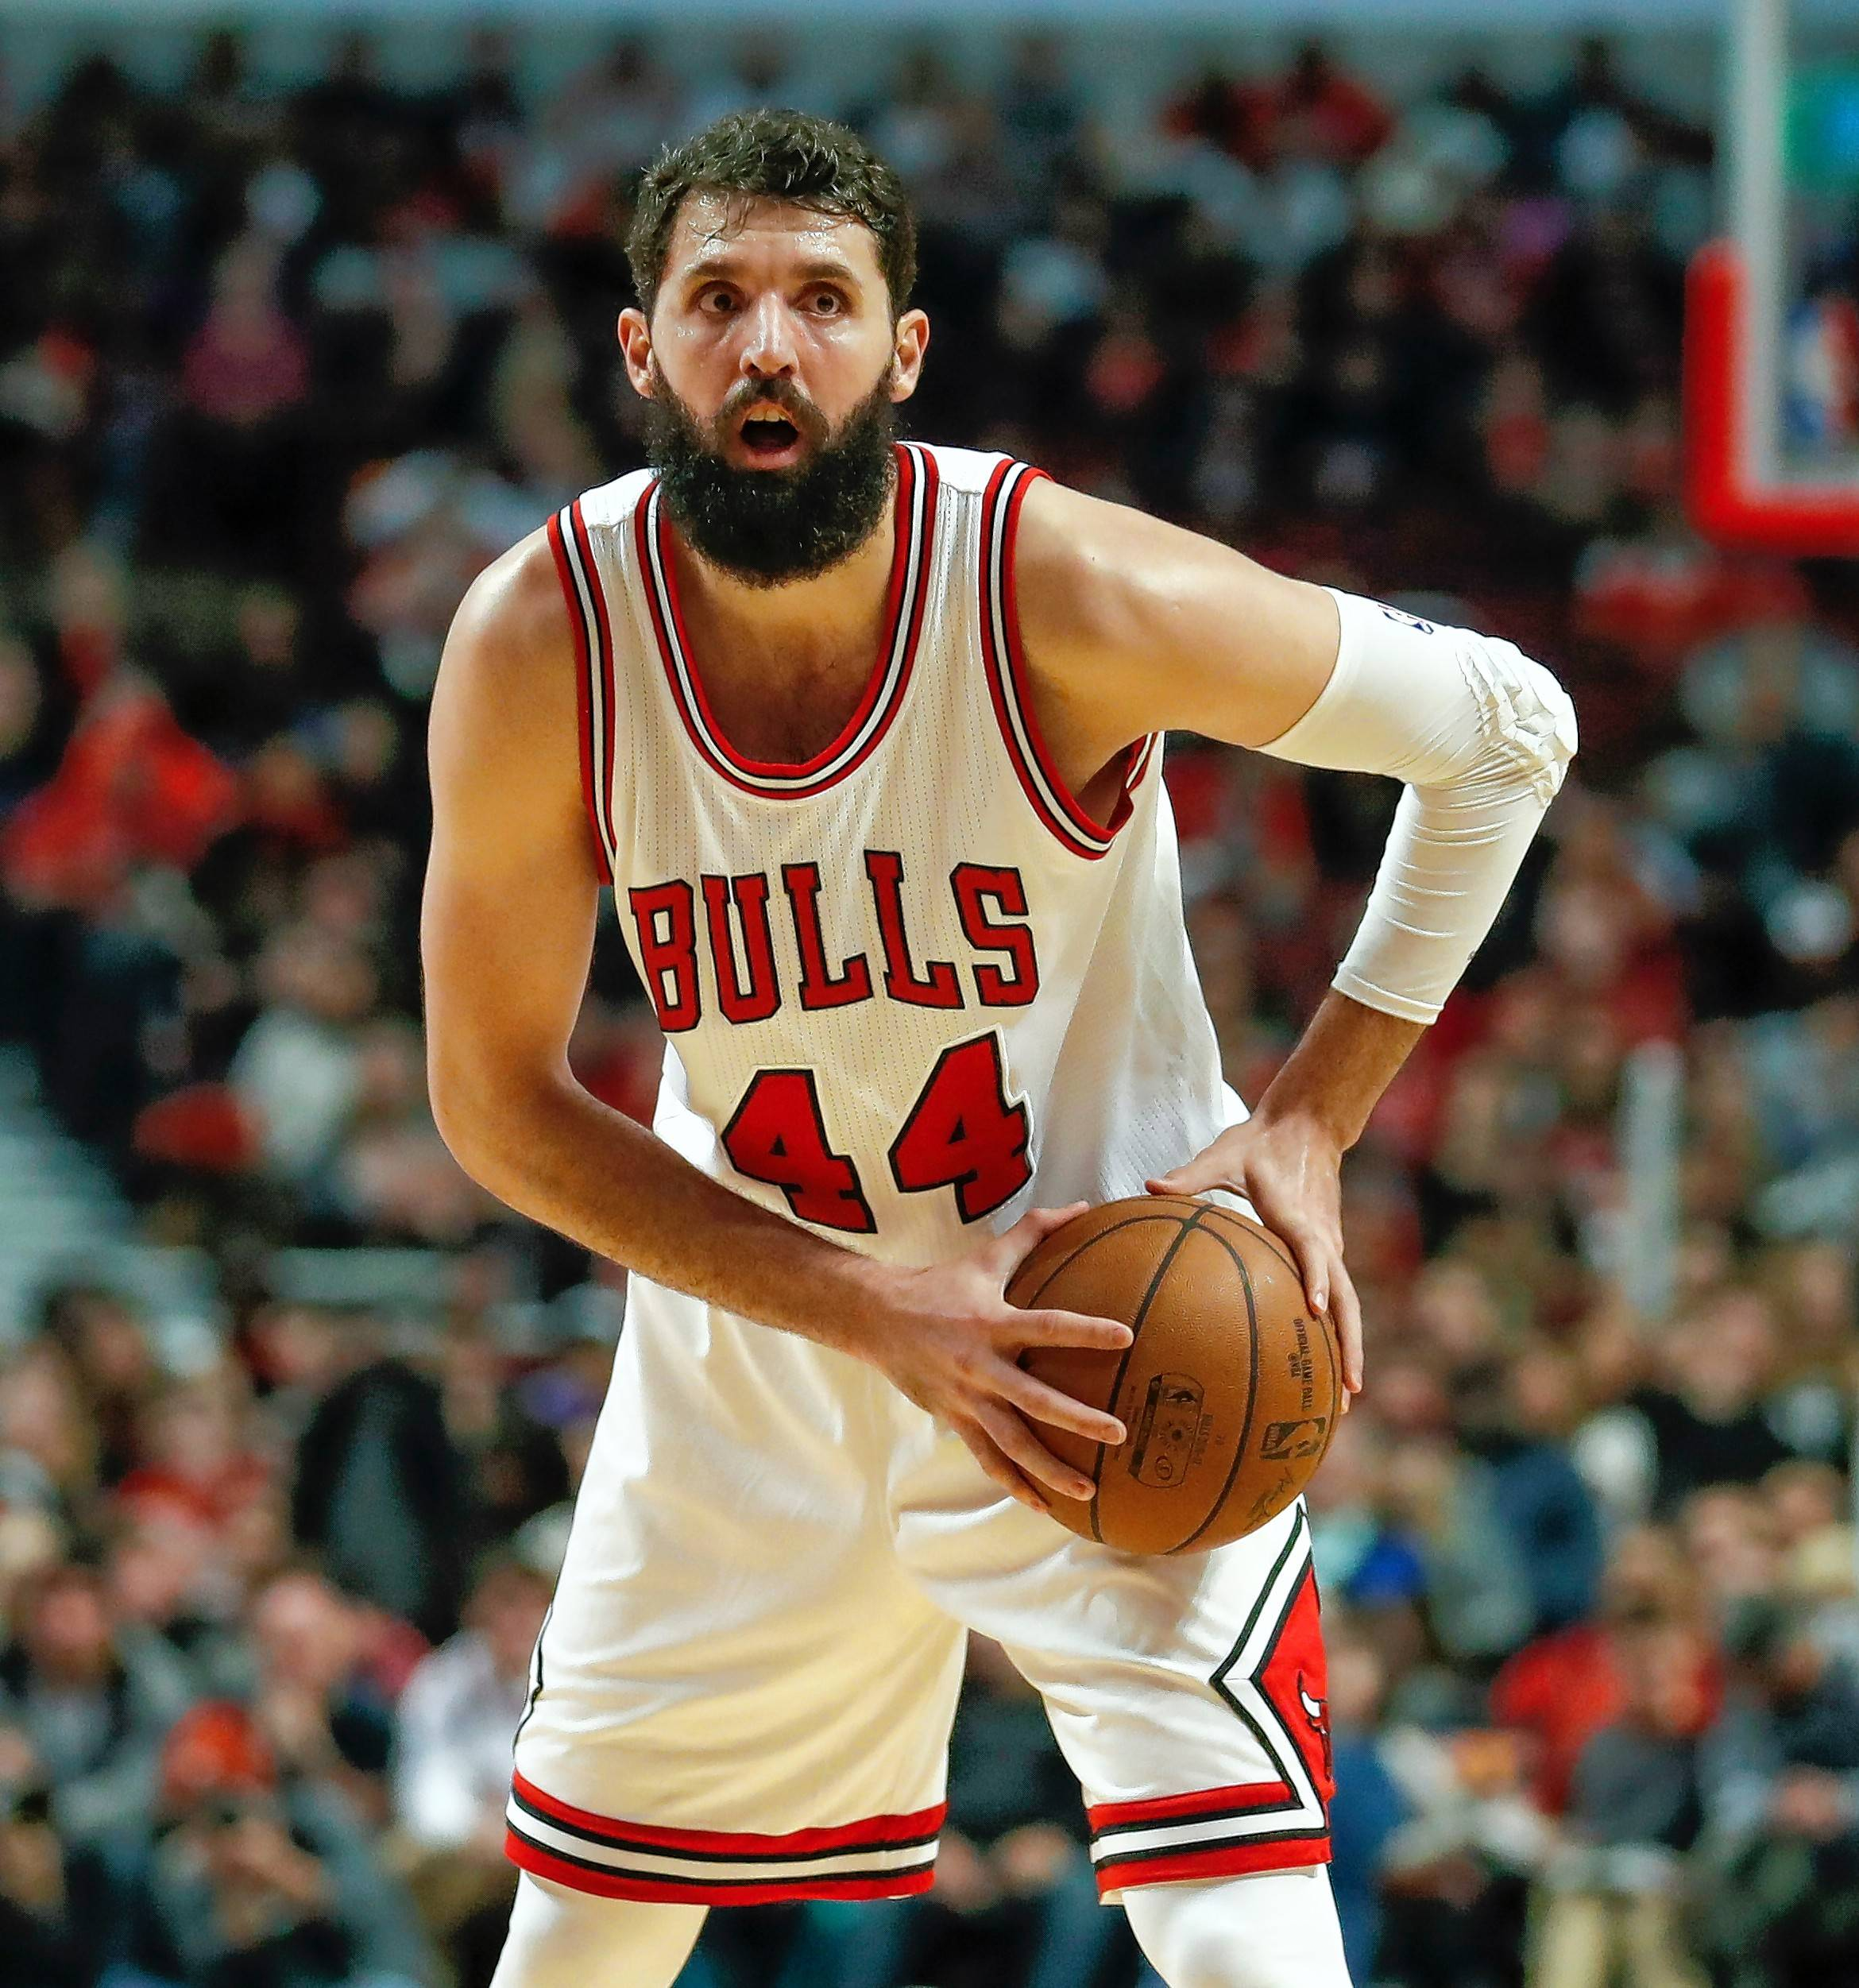 Has Chicago Bulls forward Nikola Mirotic demonstrated enough to attract other NBA teams to trade for him?